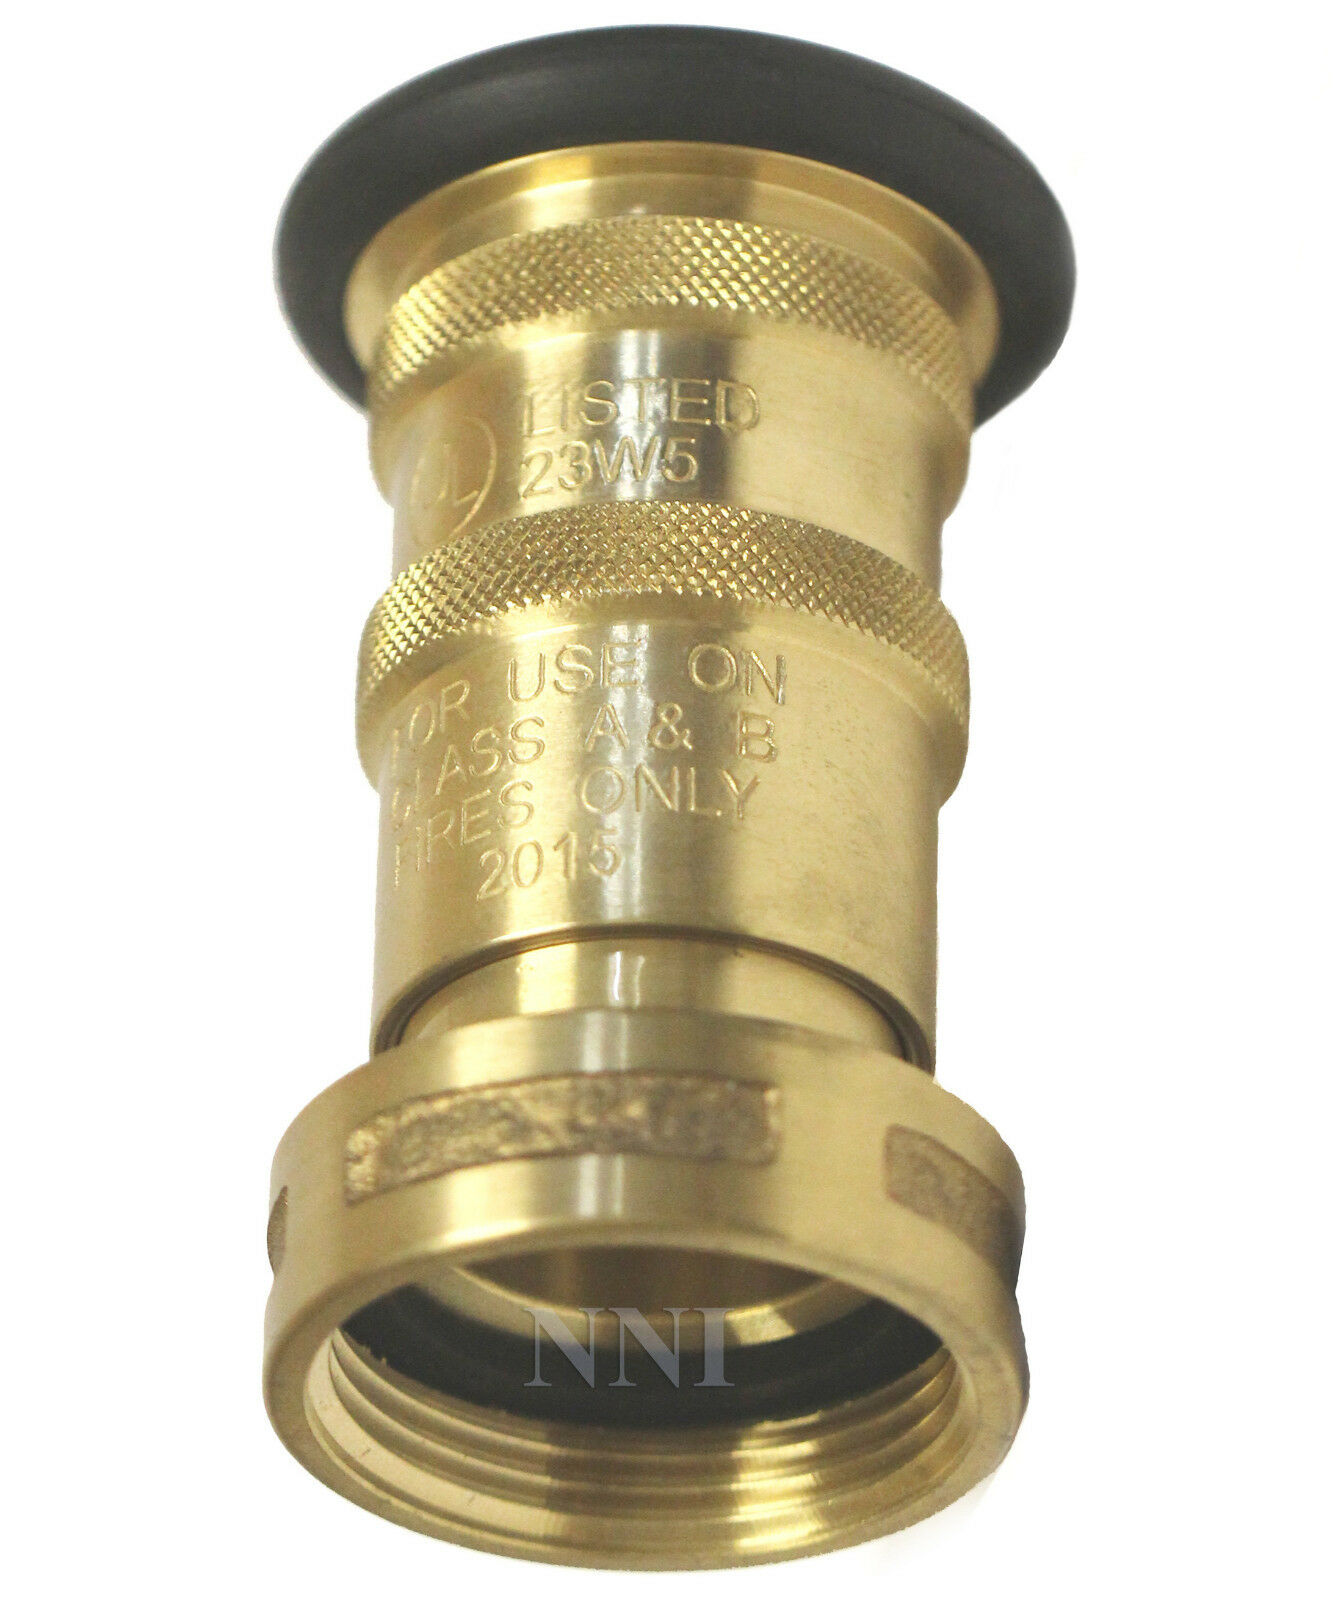 Nni quot nst nh fire hose brass bronze fog nozzle ul